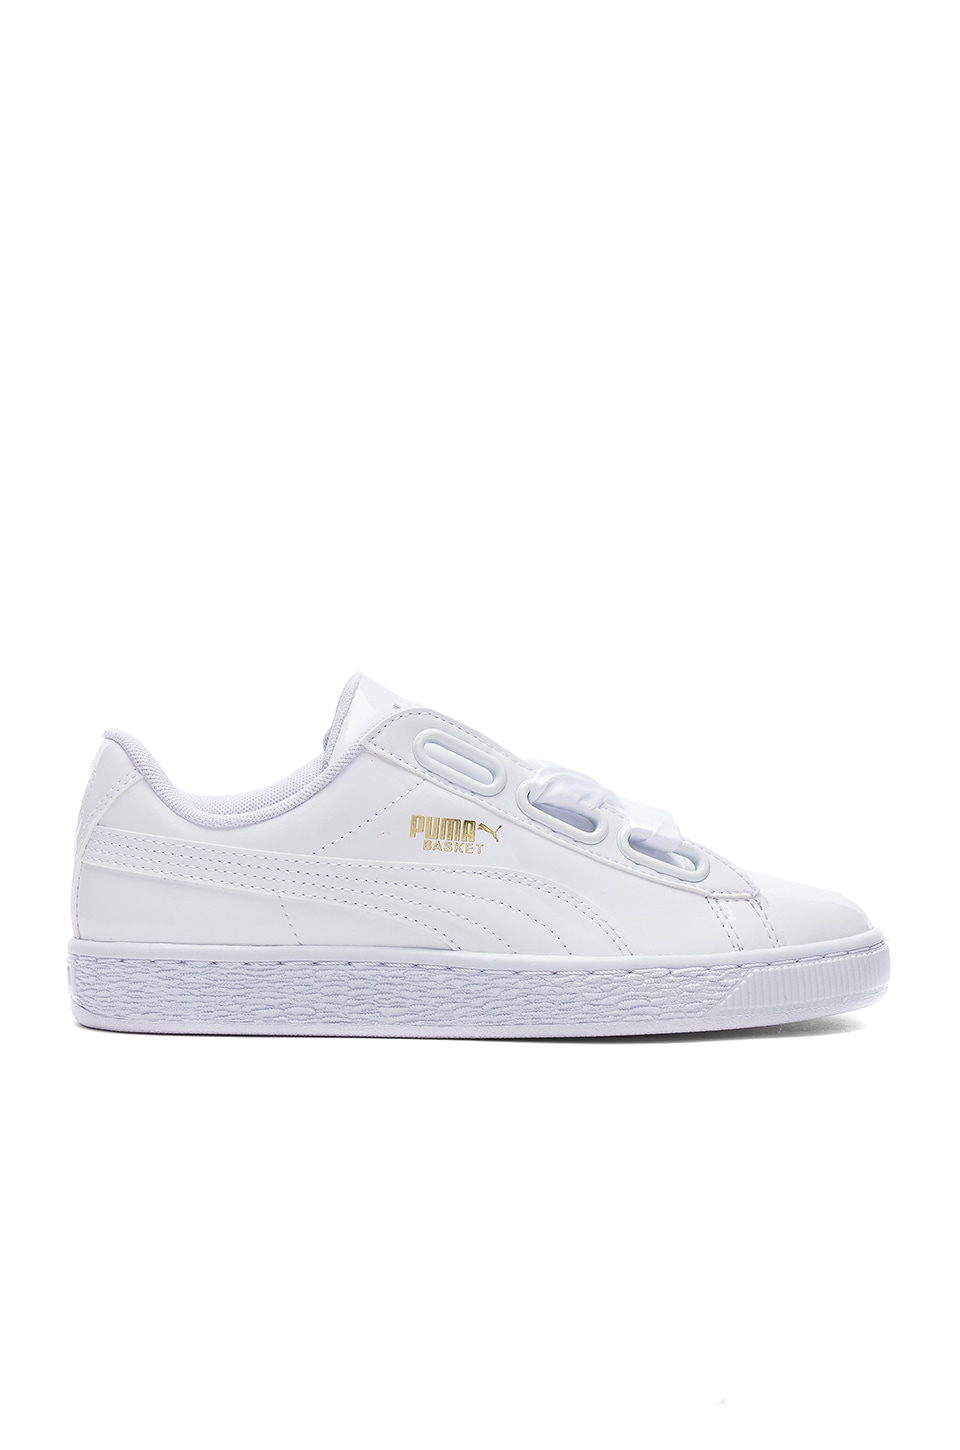 Puma Basket Heart Patent Sneaker in Puma White